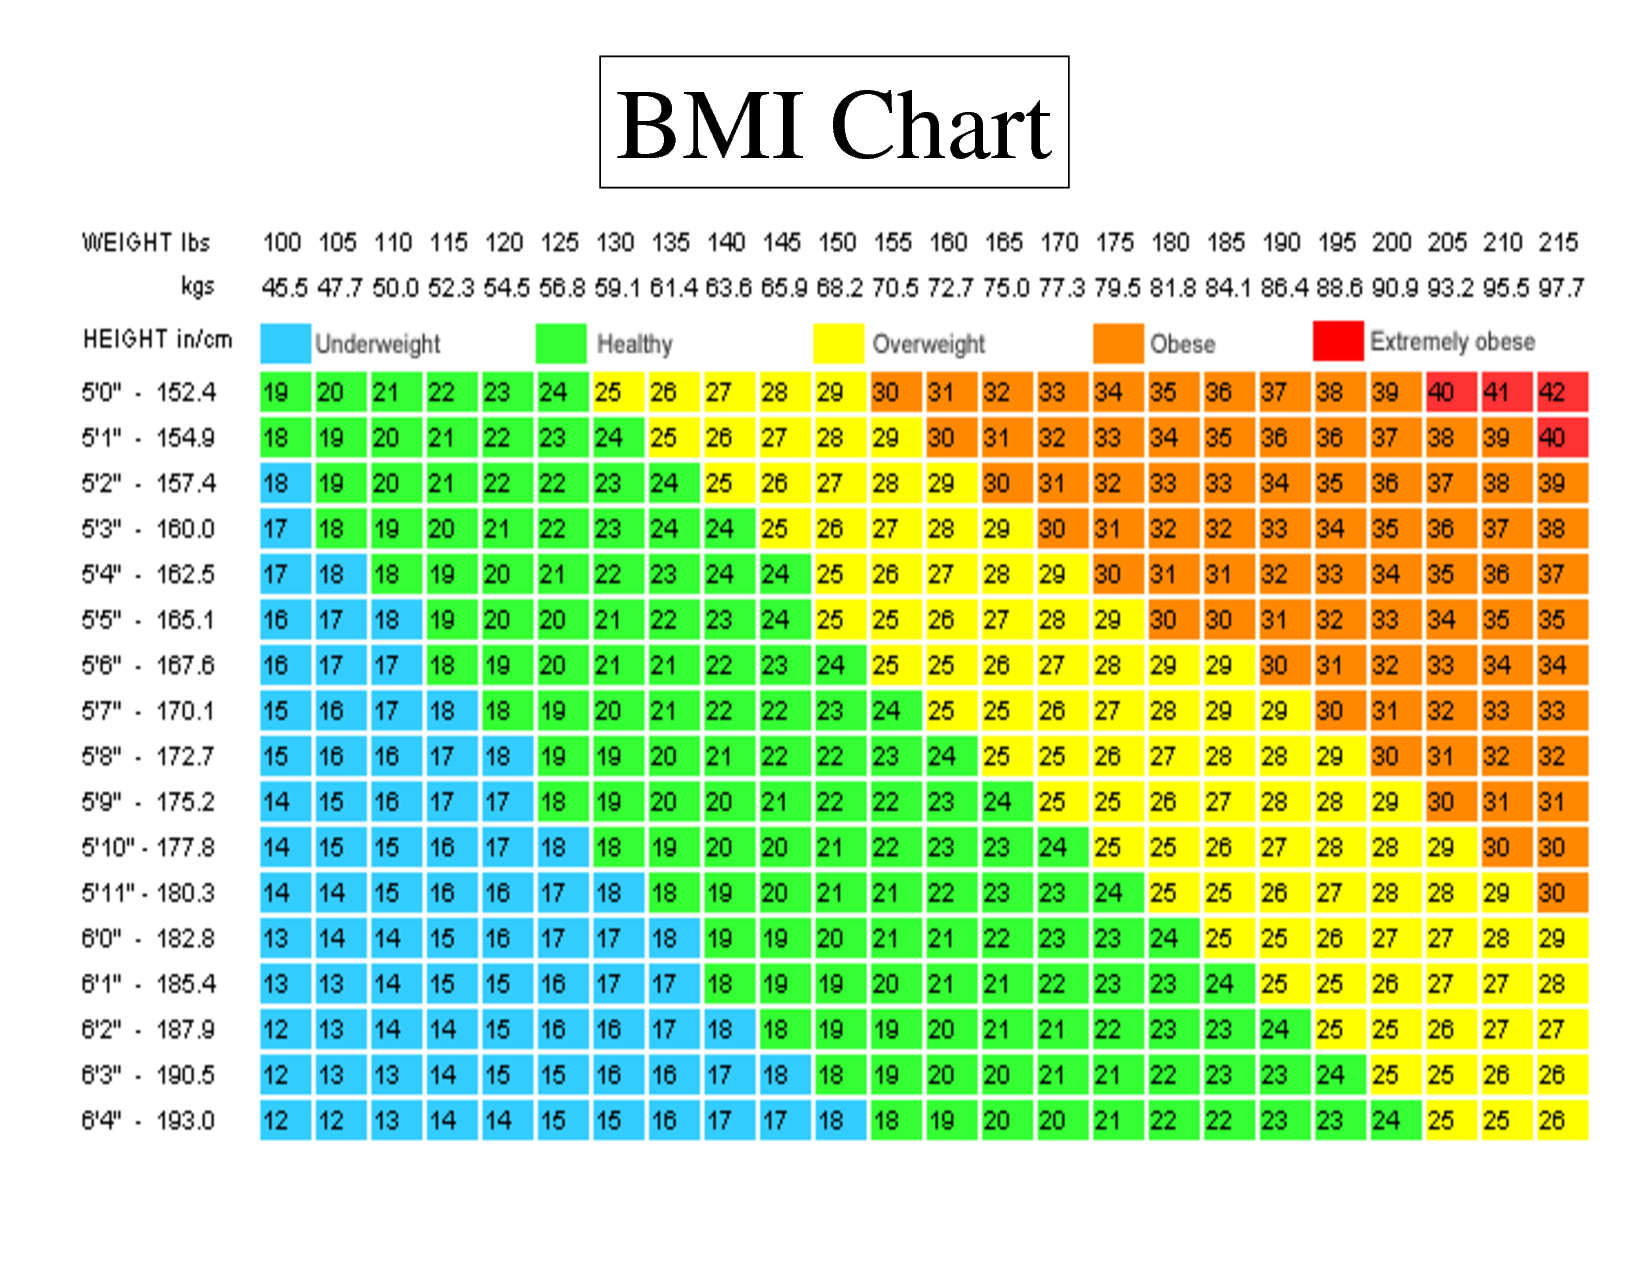 Bmi calculator body mass index measurement fat based height weight applies men women ages years description from calendariu also chart rh pinterest